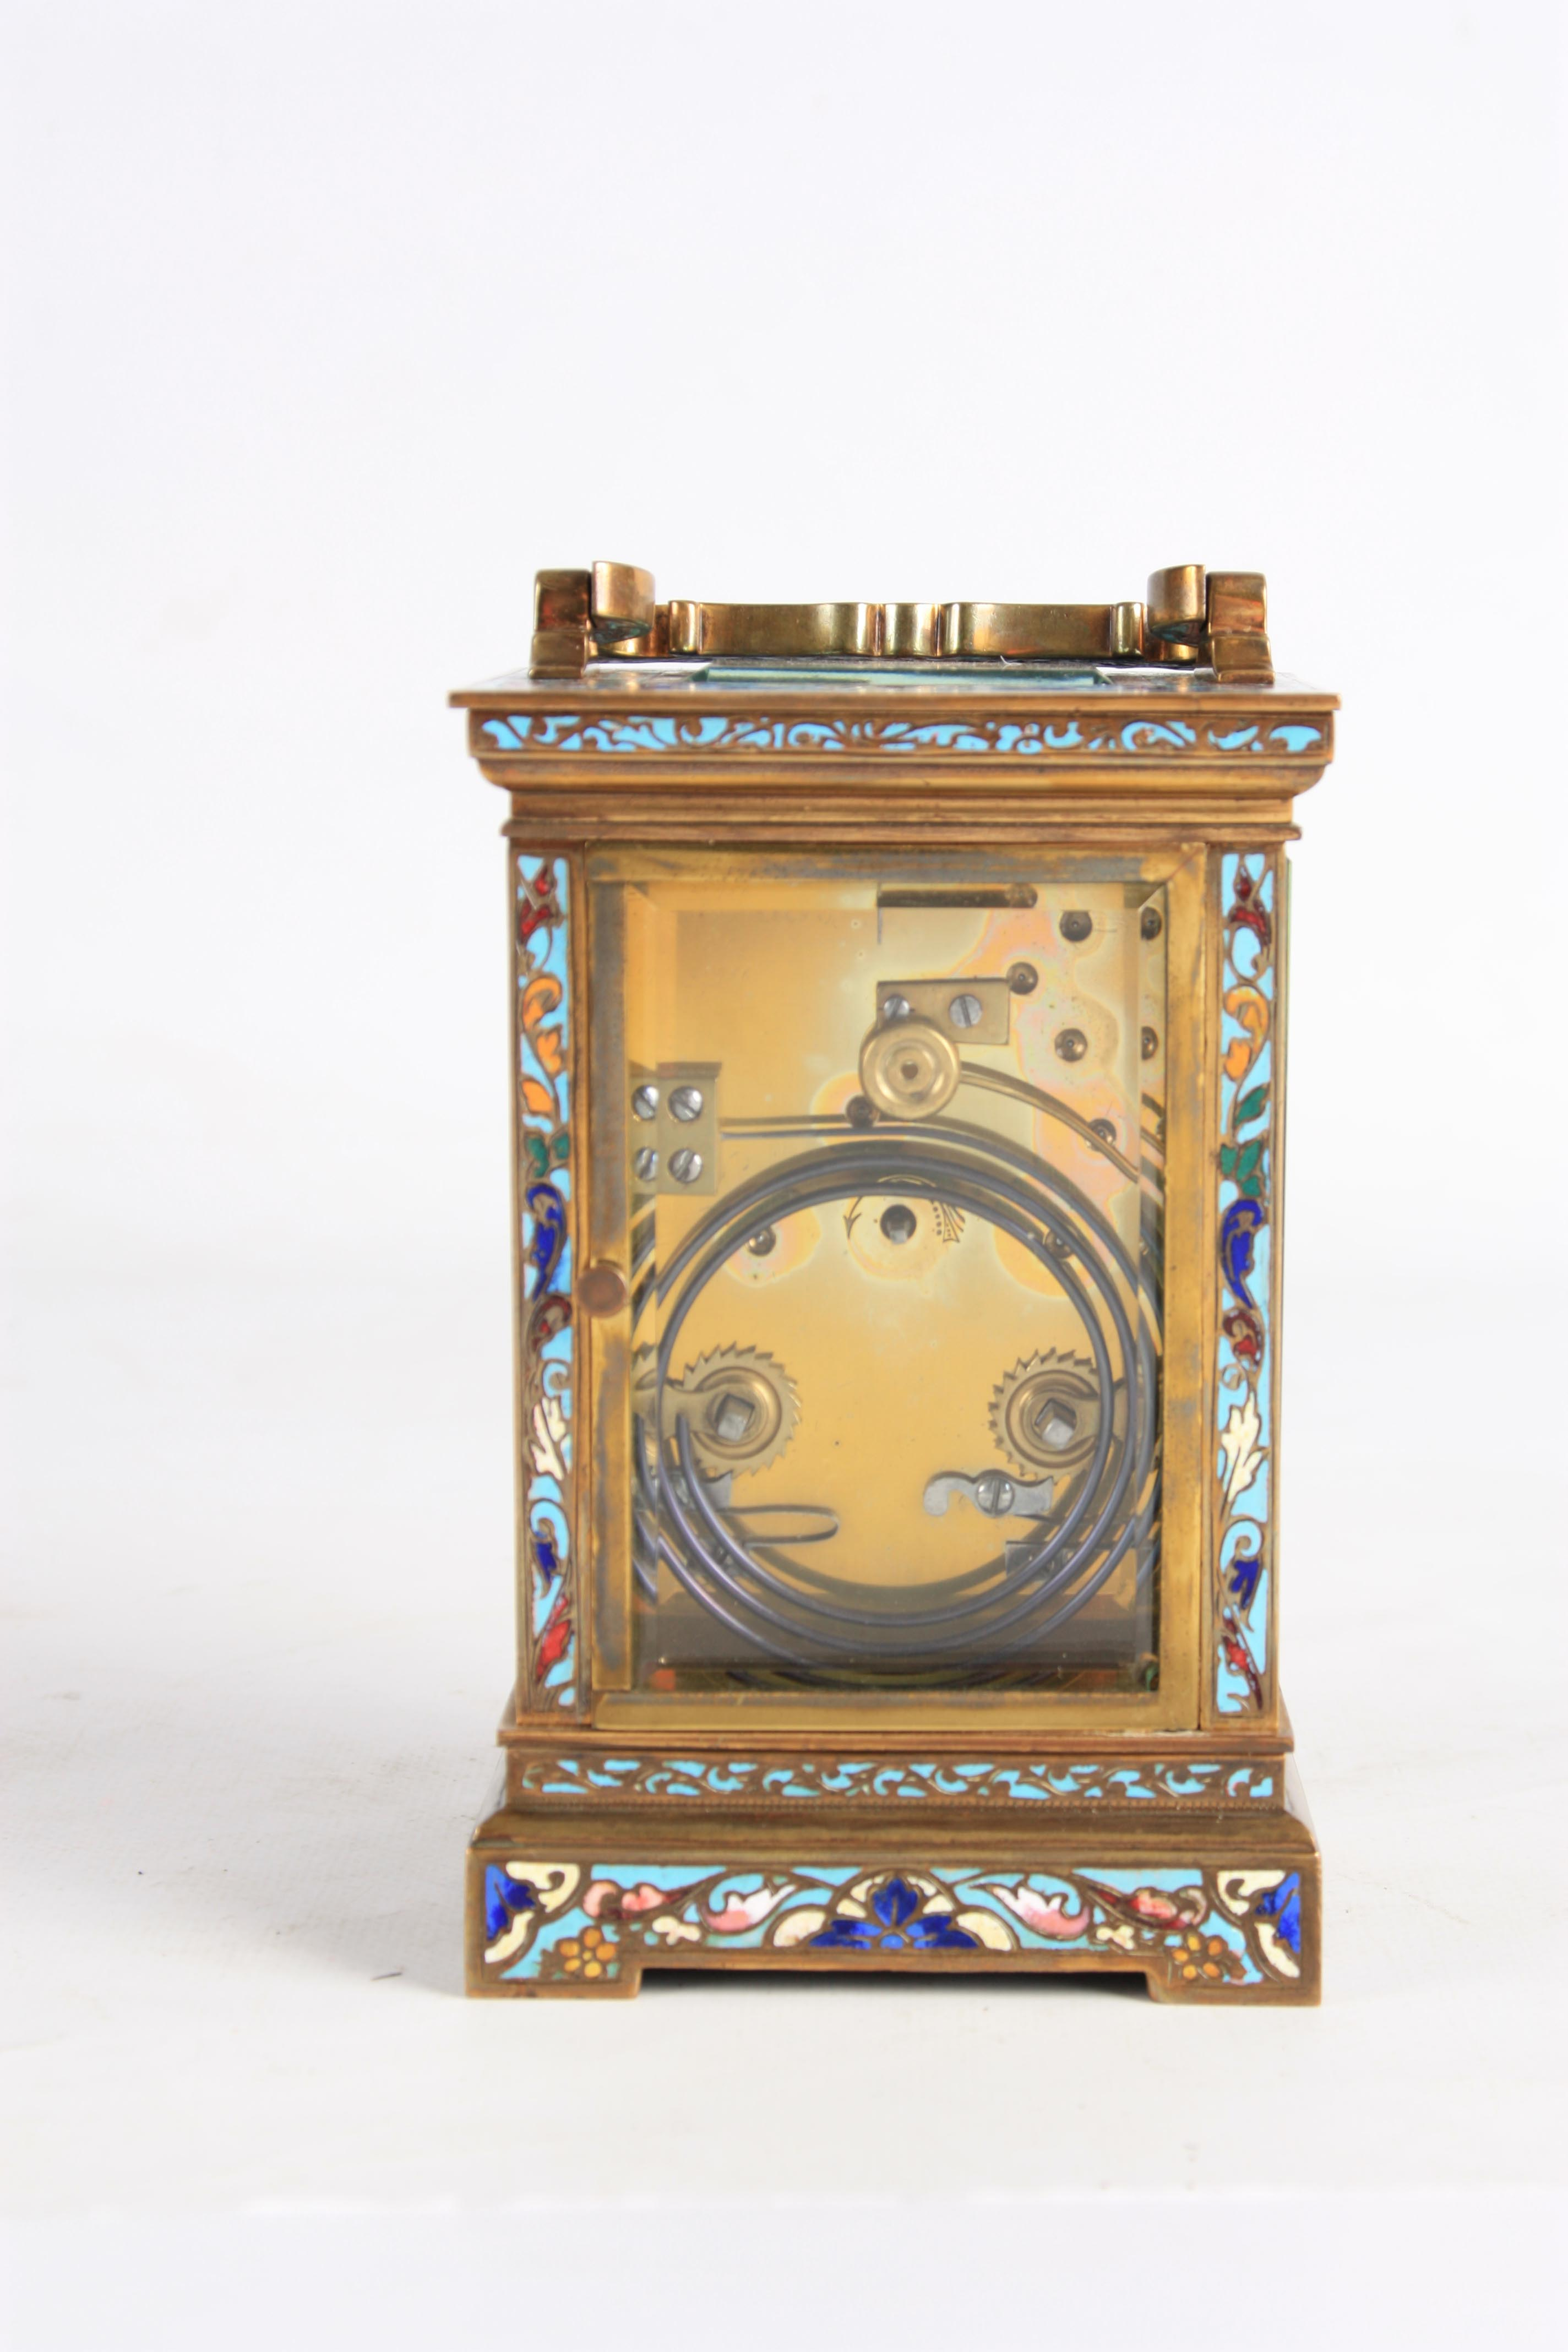 A LATE 19TH CENTURY FRENCH CHAMPLEVE ENAMEL STRIKING CARRIAGE CLOCK the case covered in champleve - Image 5 of 6